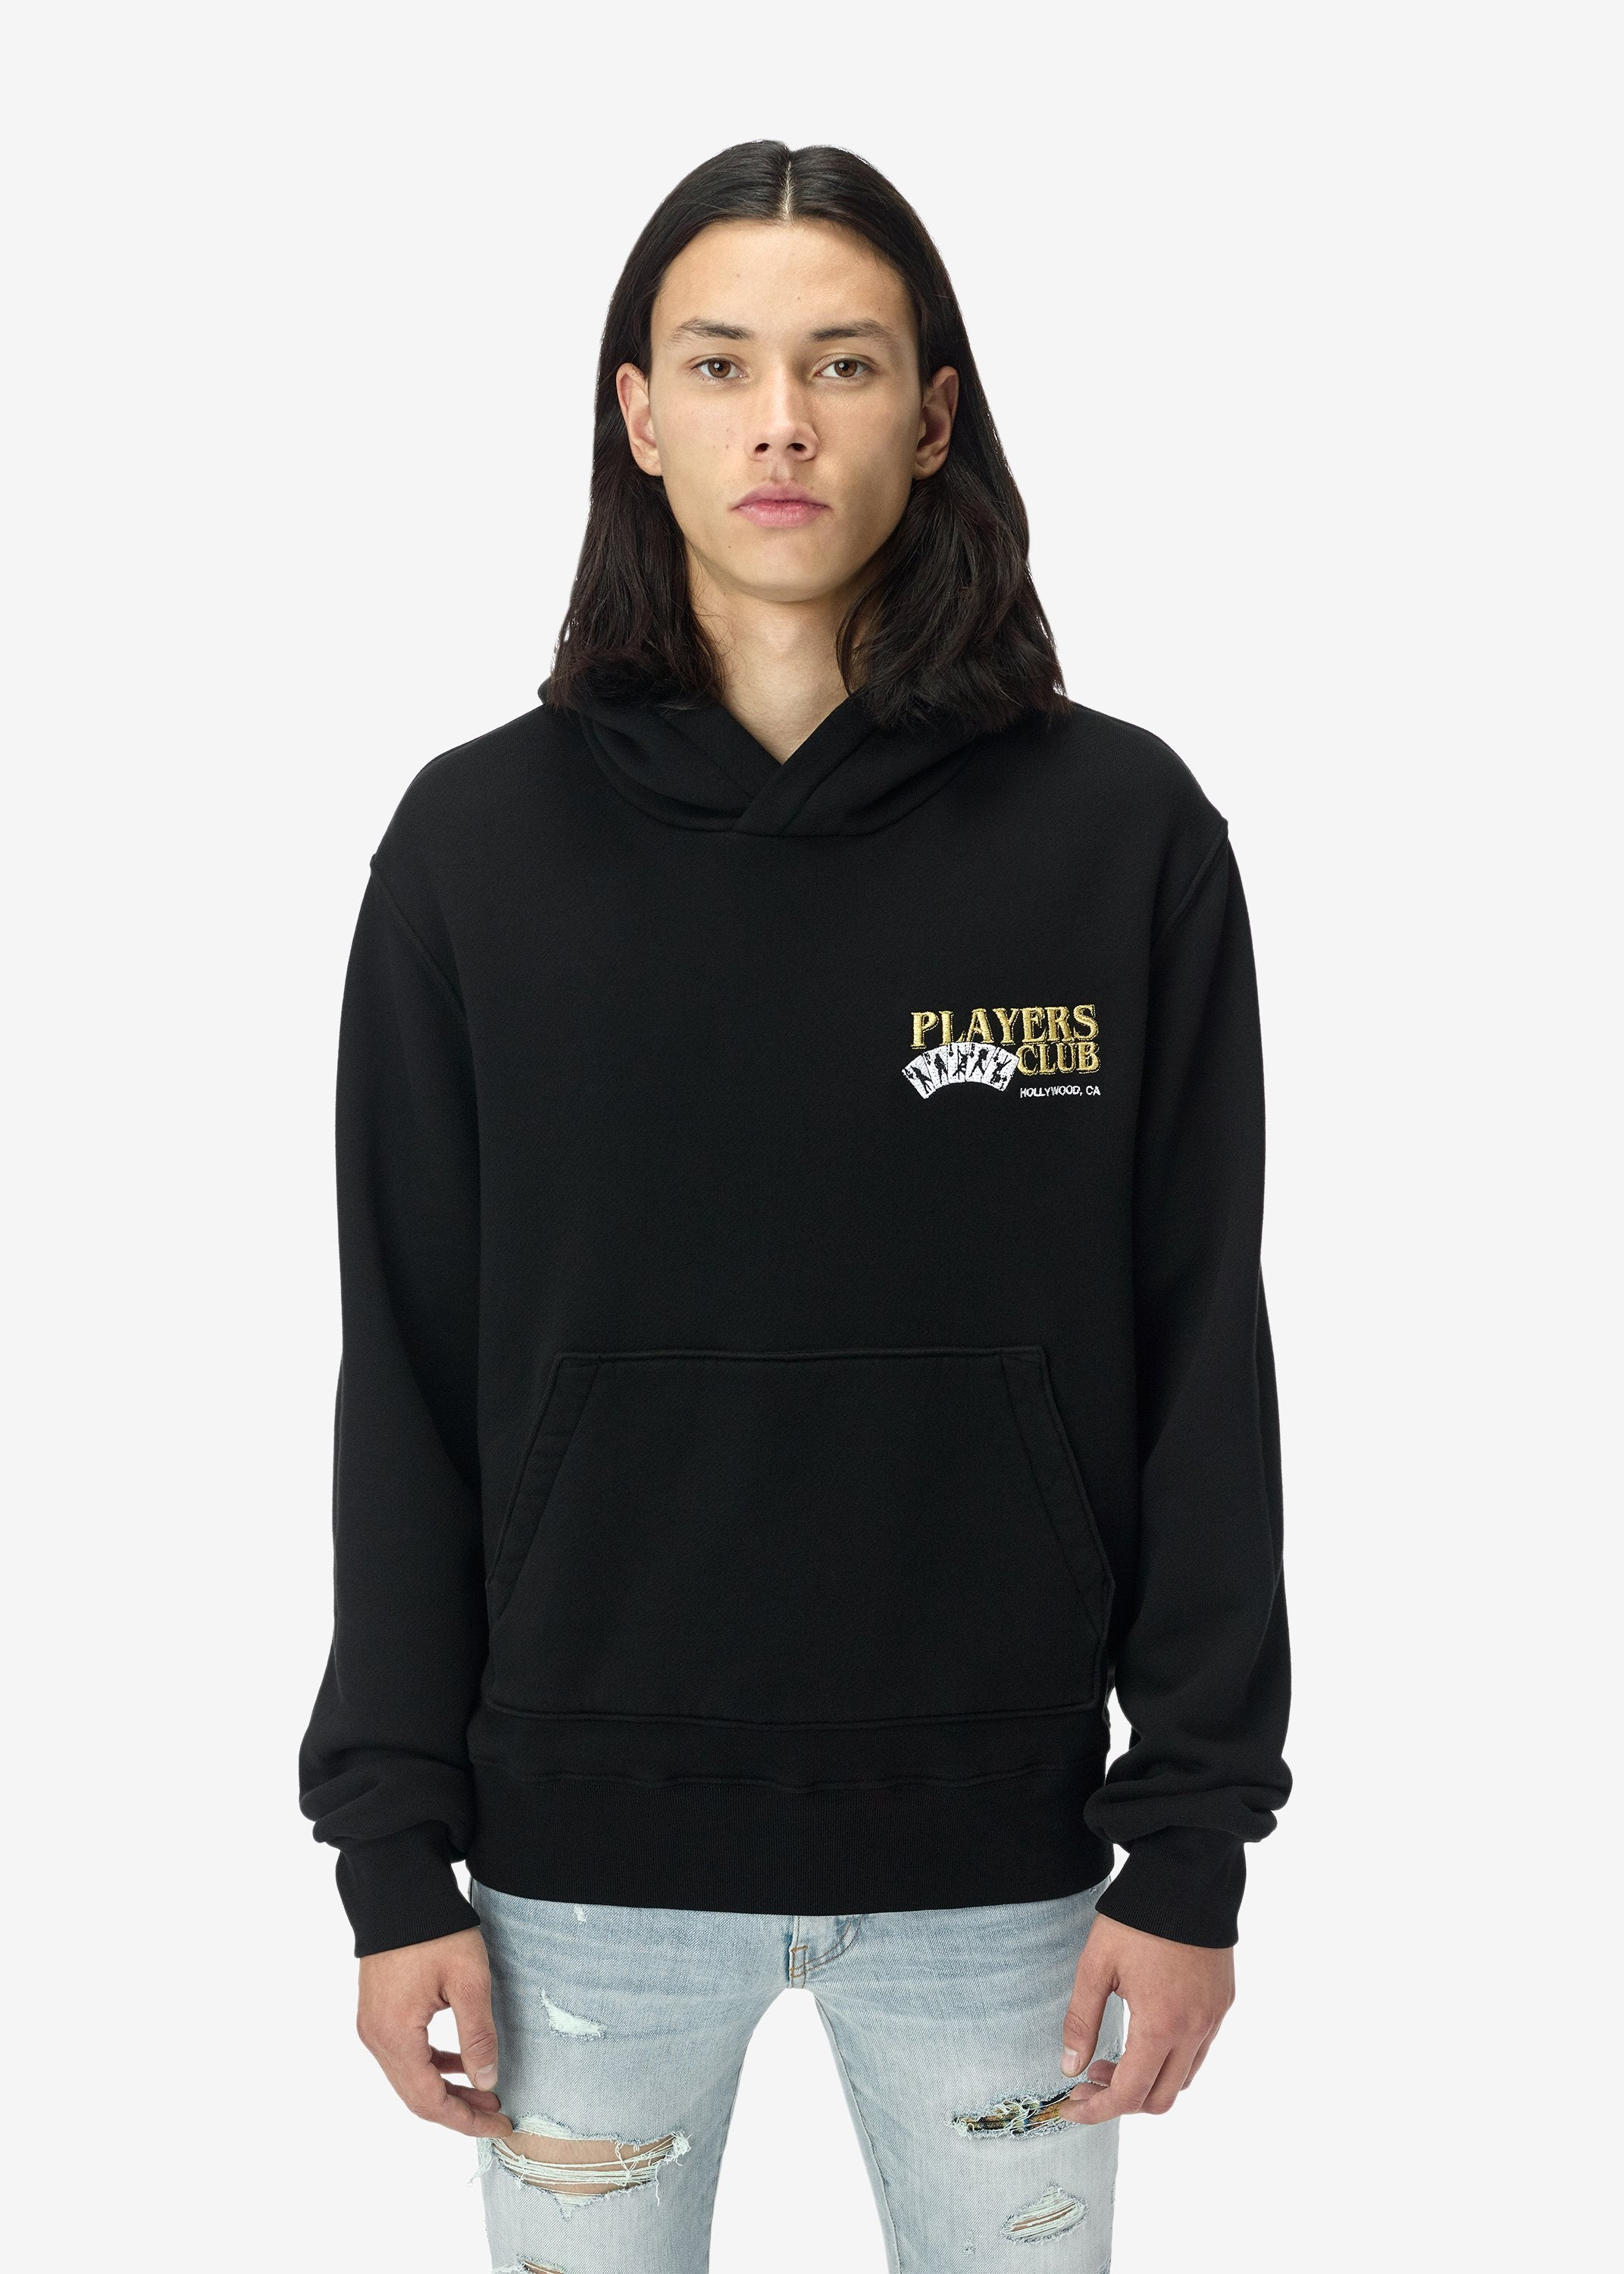 players-club-hoodie-black-image-1